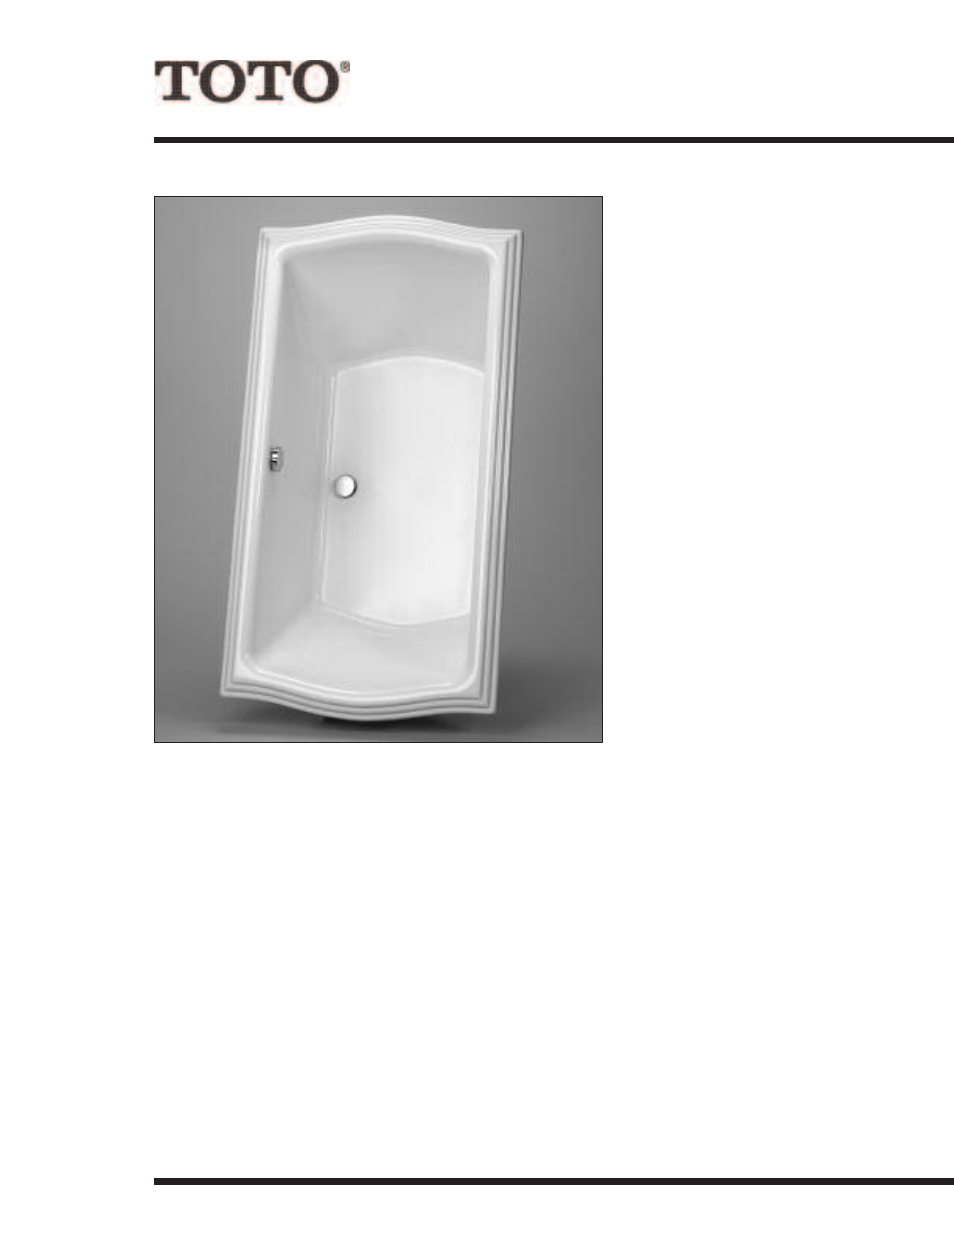 Factory Direct Hardware Toto ABY781NY User Manual | 2 pages